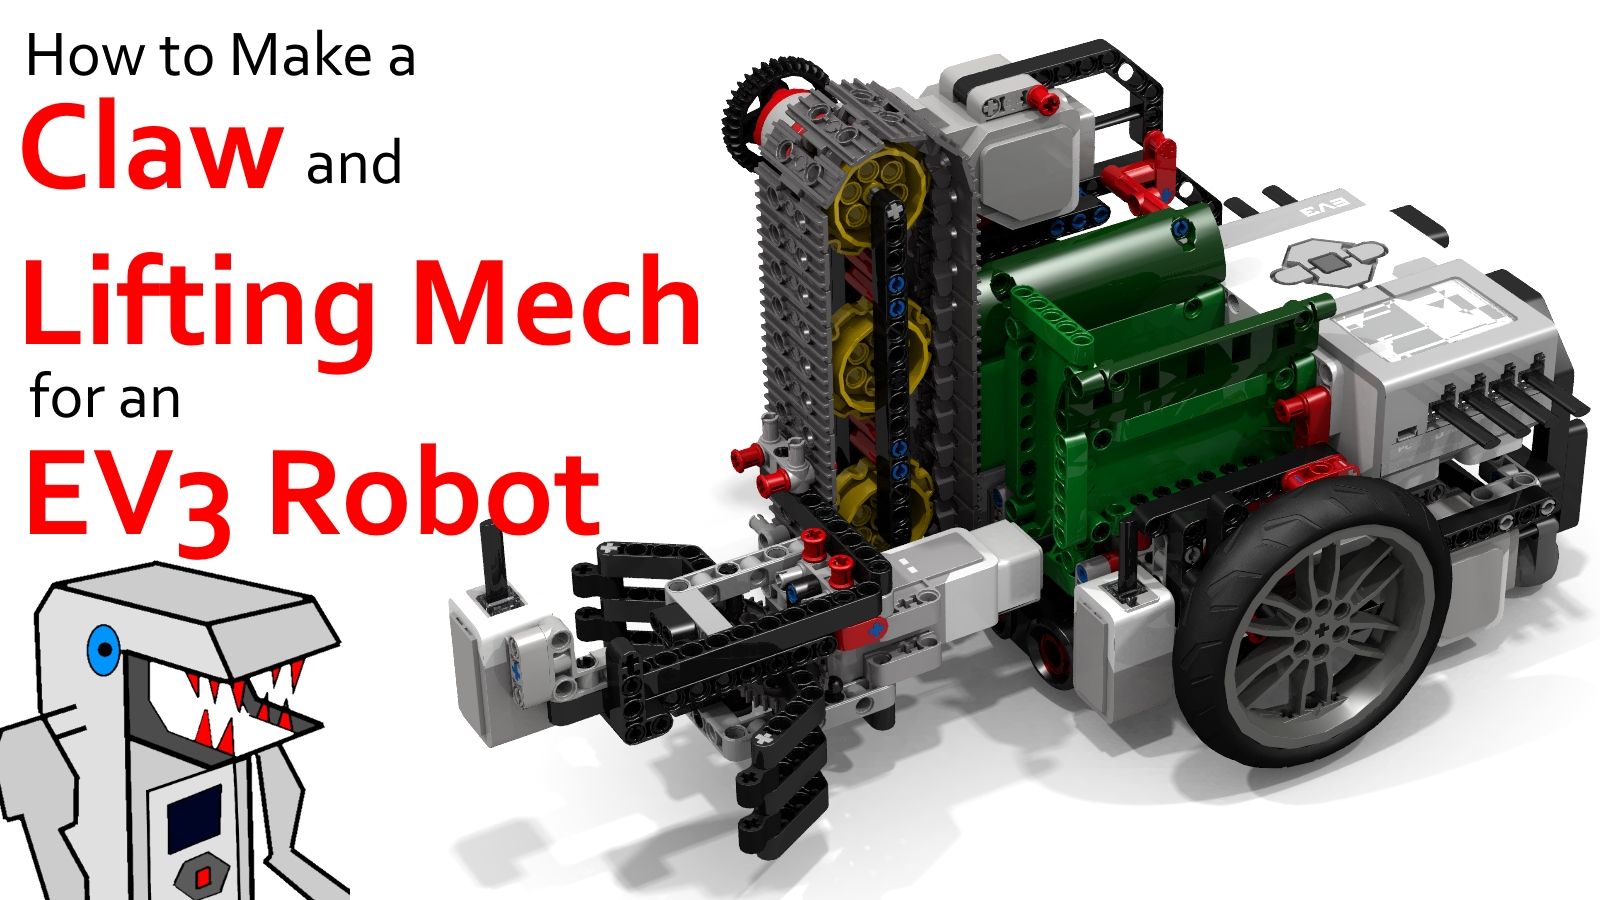 Make a Claw and Lift Mechanism for your EV3 Robot – Builderdude35